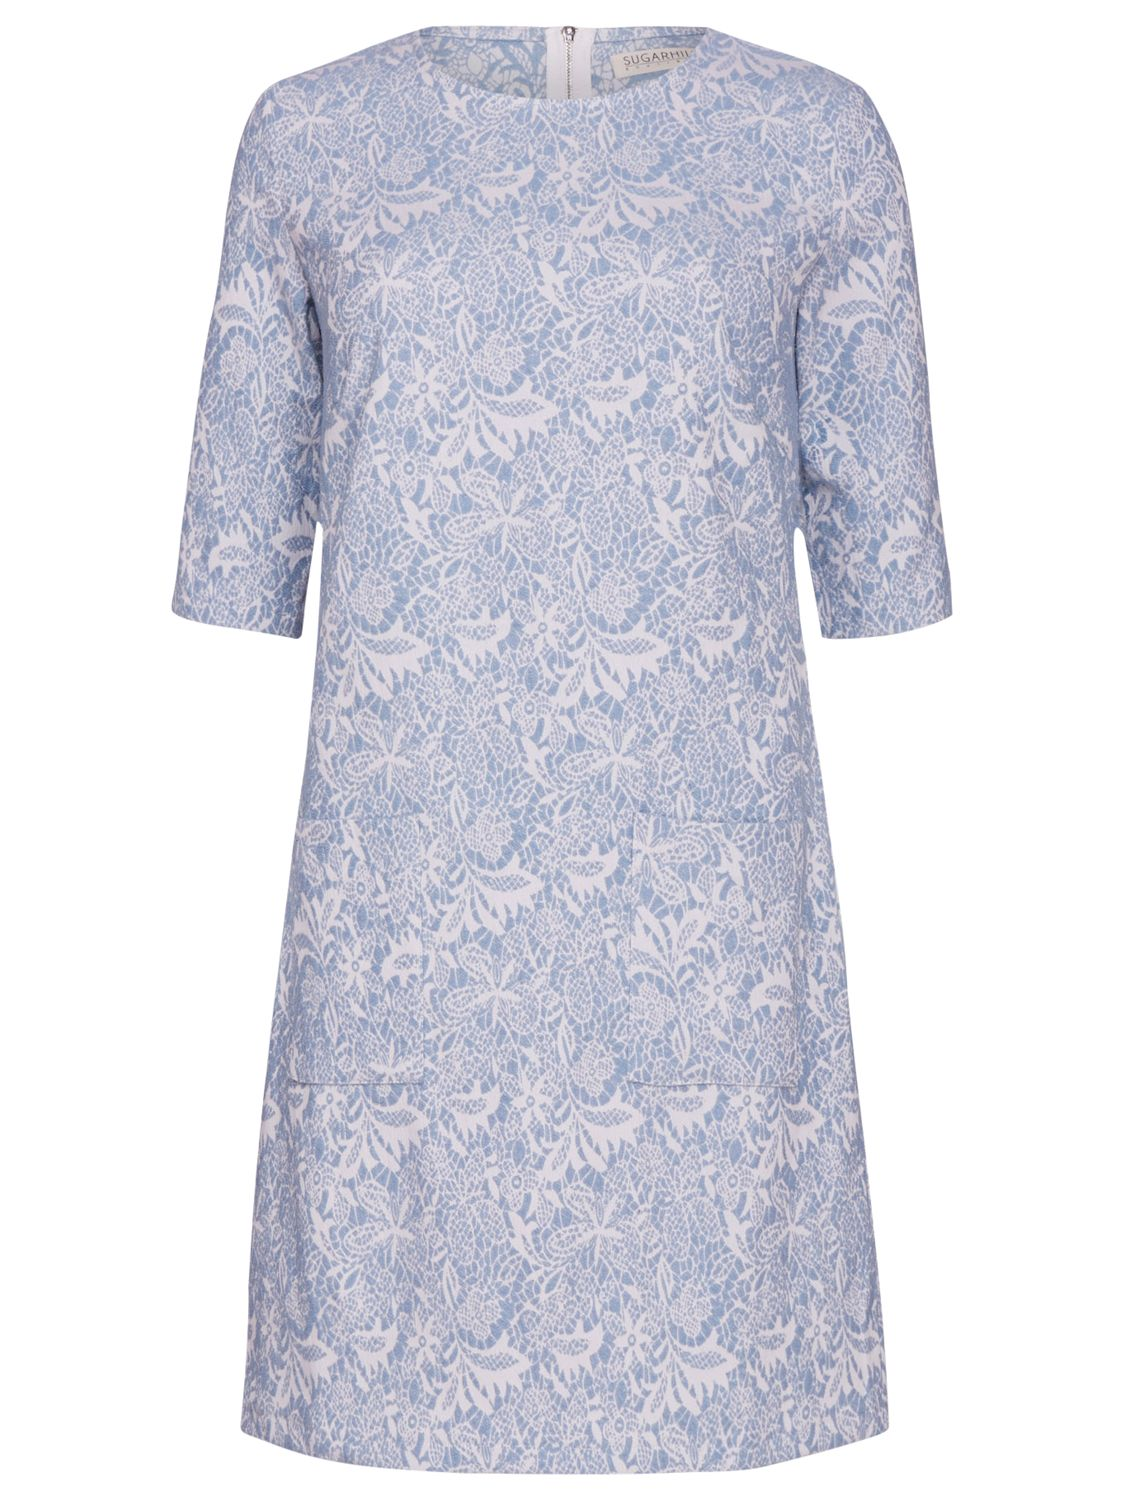 sugarhill boutique floral jacquard tunic dress blue, sugarhill, boutique, floral, jacquard, tunic, dress, blue, sugarhill boutique, 8|12|16|14|10, women, womens dresses, gifts, wedding, wedding clothing, female guests, 1933539